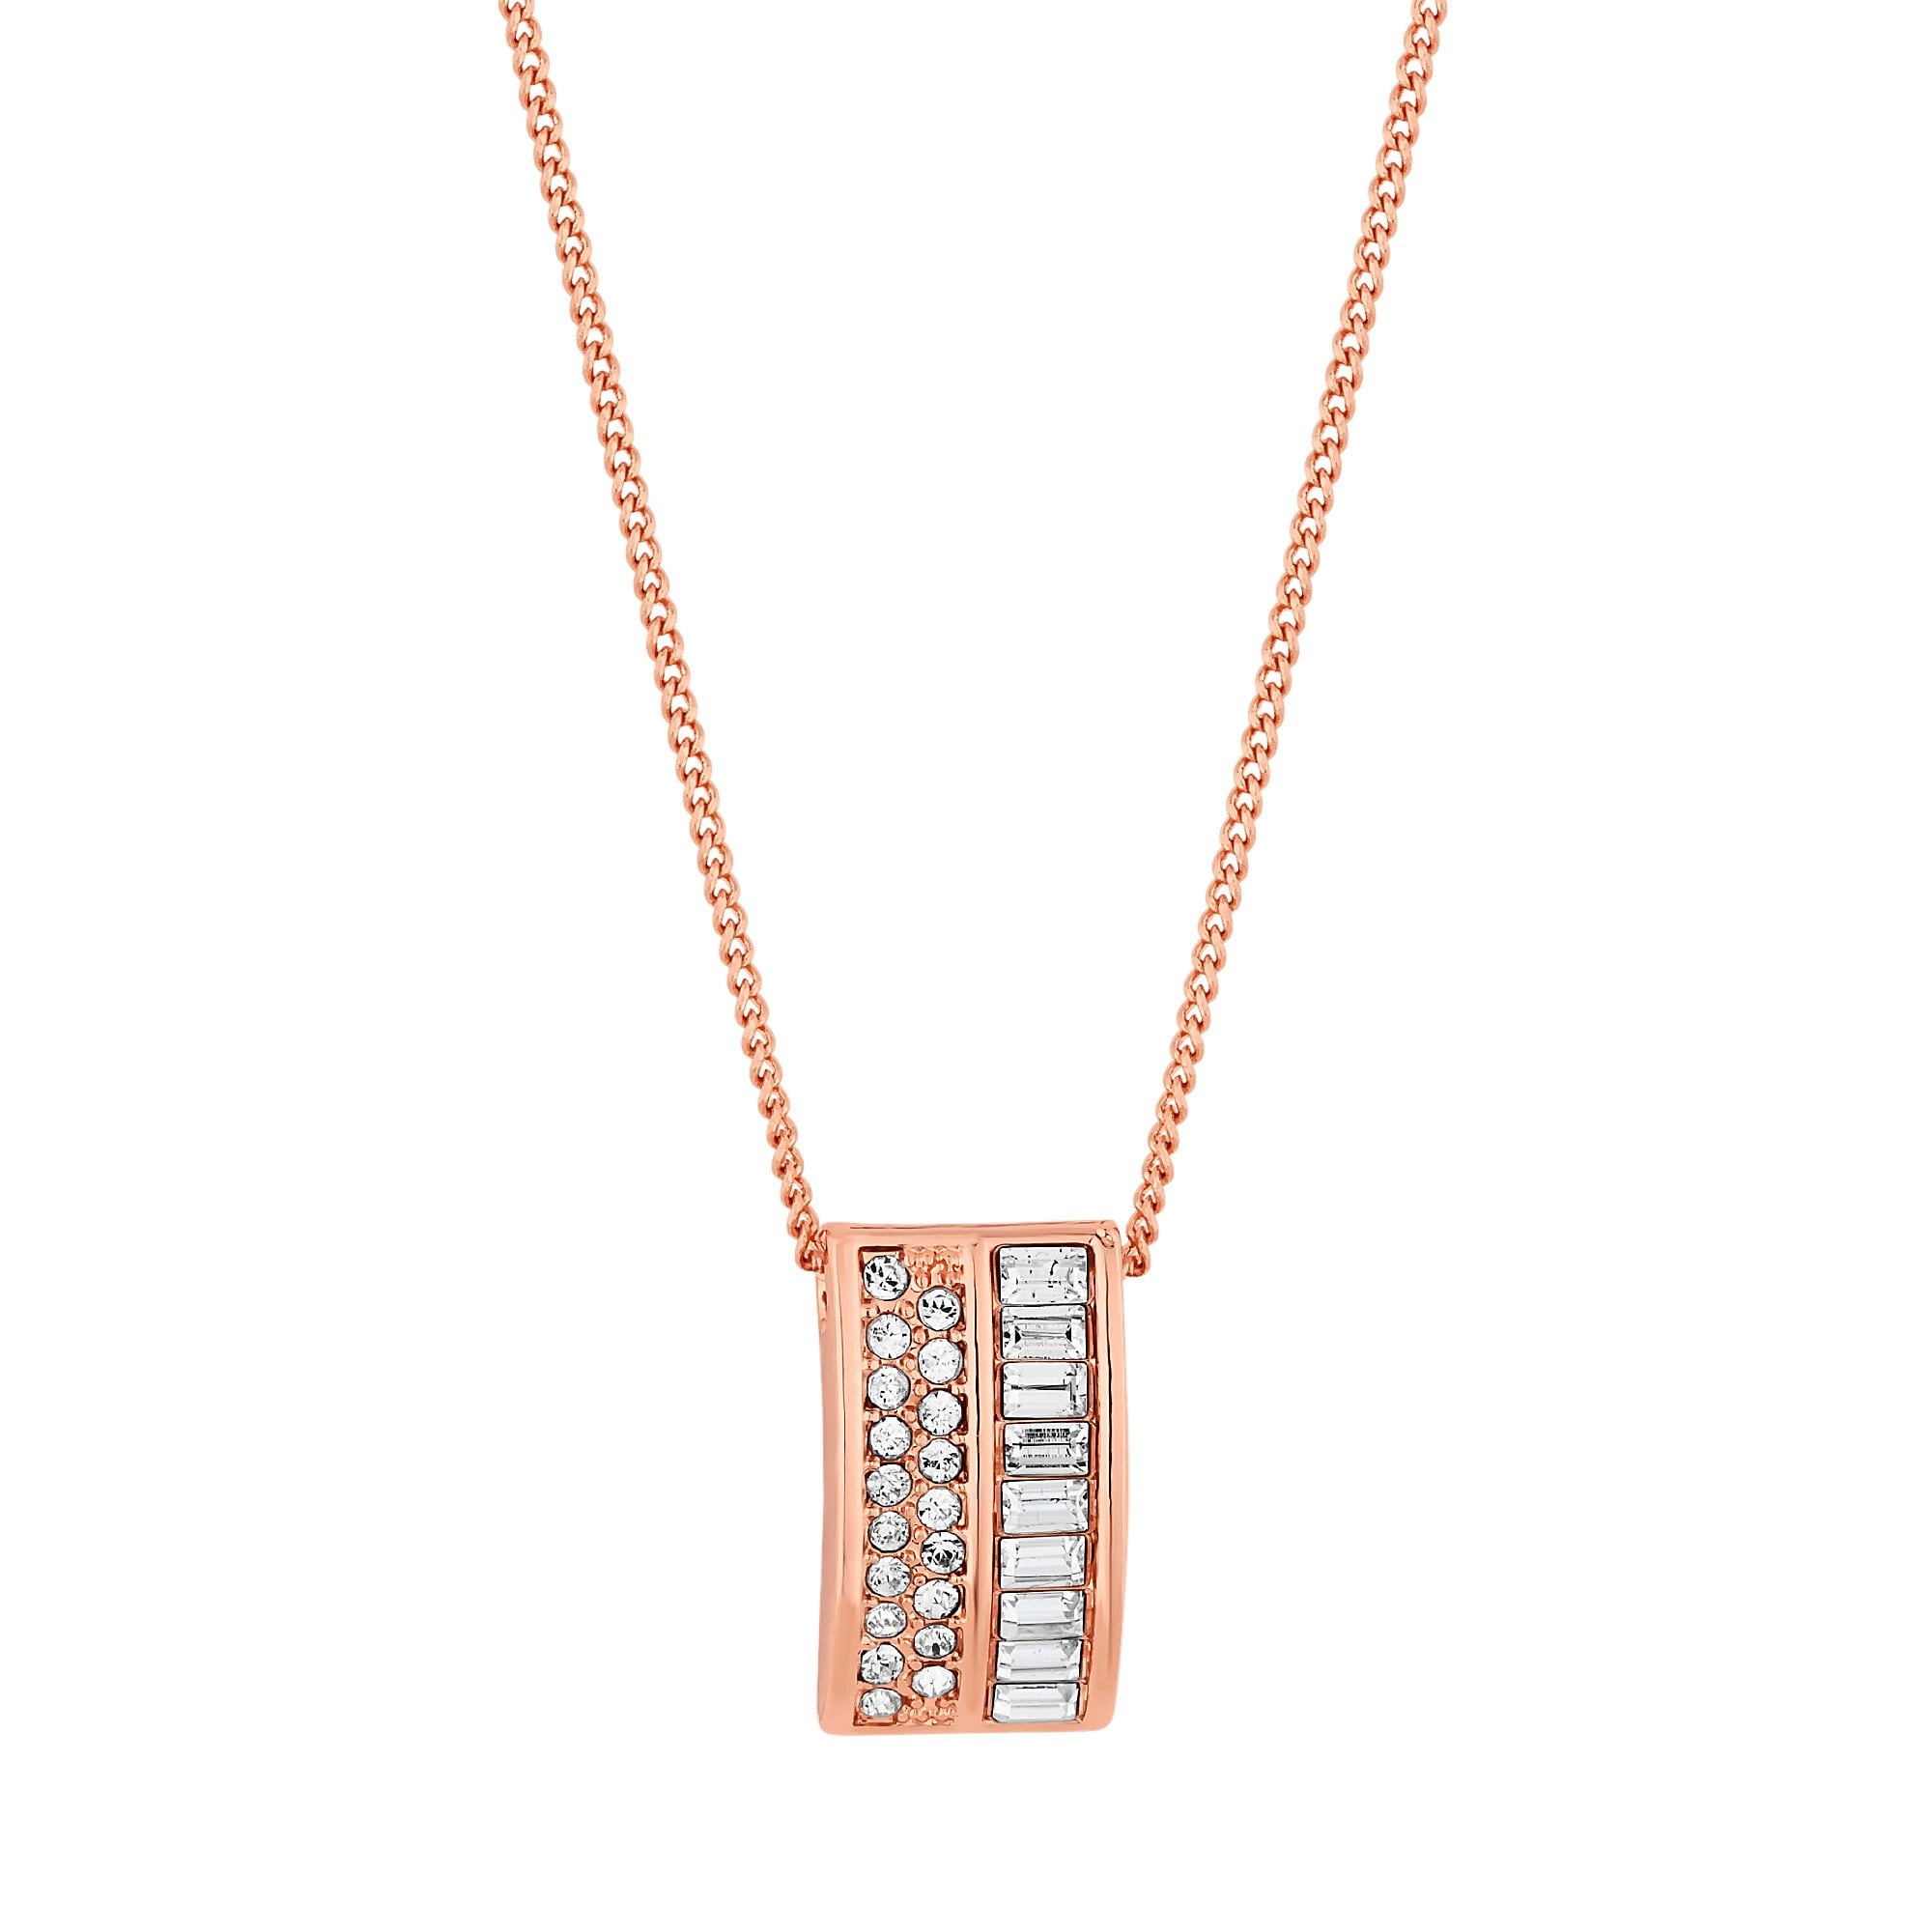 42a0d0f95 Jon Richard made with Swarovski® crystals Rose Gold Plated Pave Curve  Pendant Necklace Embellished With